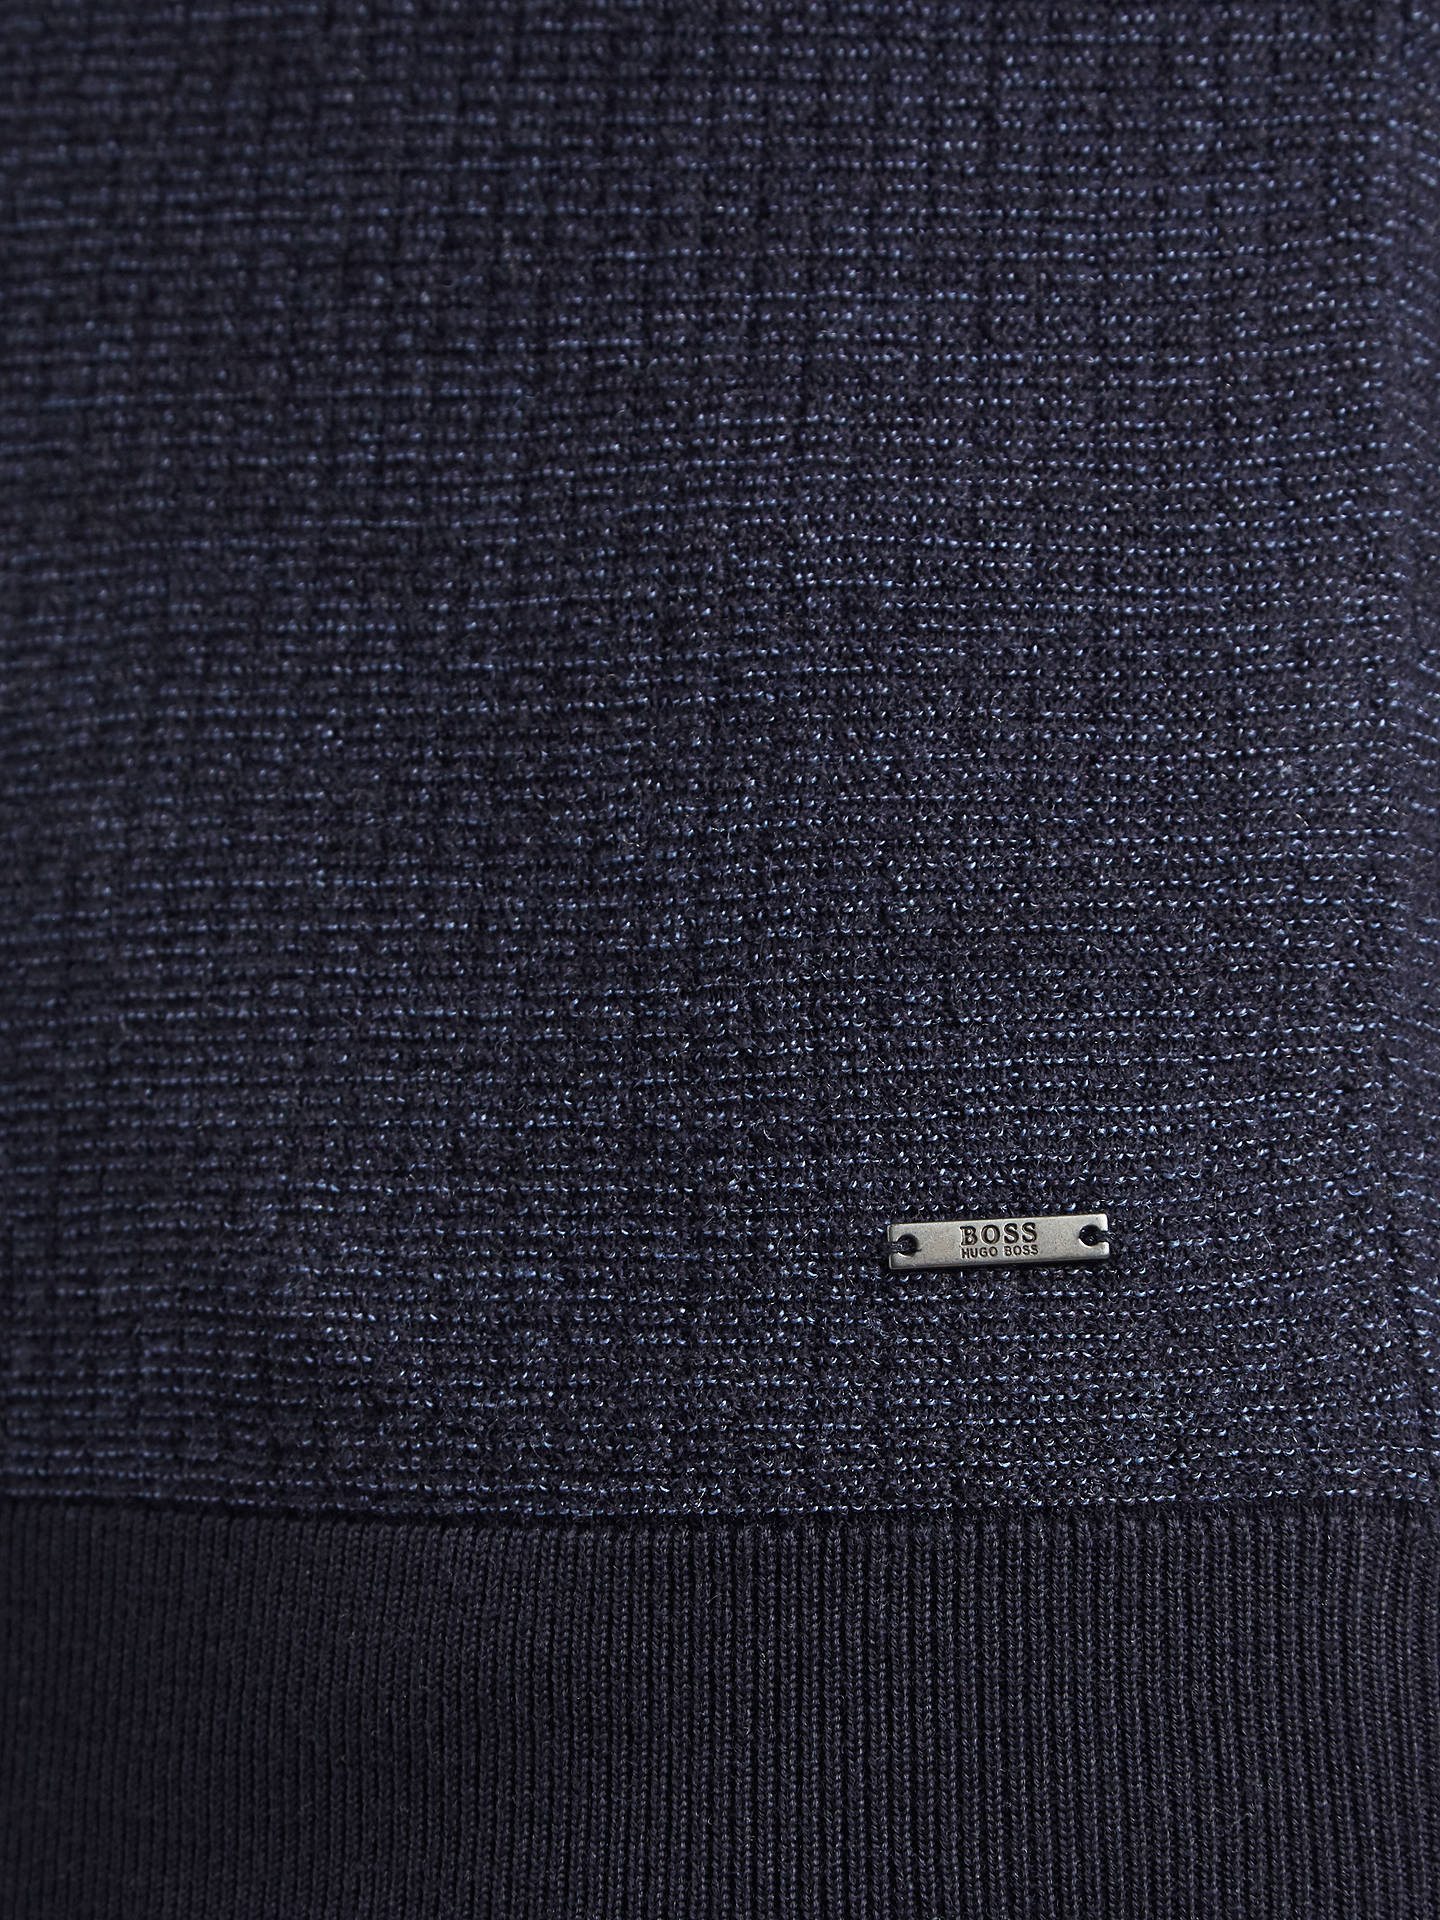 BuyBOSS Emauro V-Neck Jumper, Open Blue, S Online at johnlewis.com